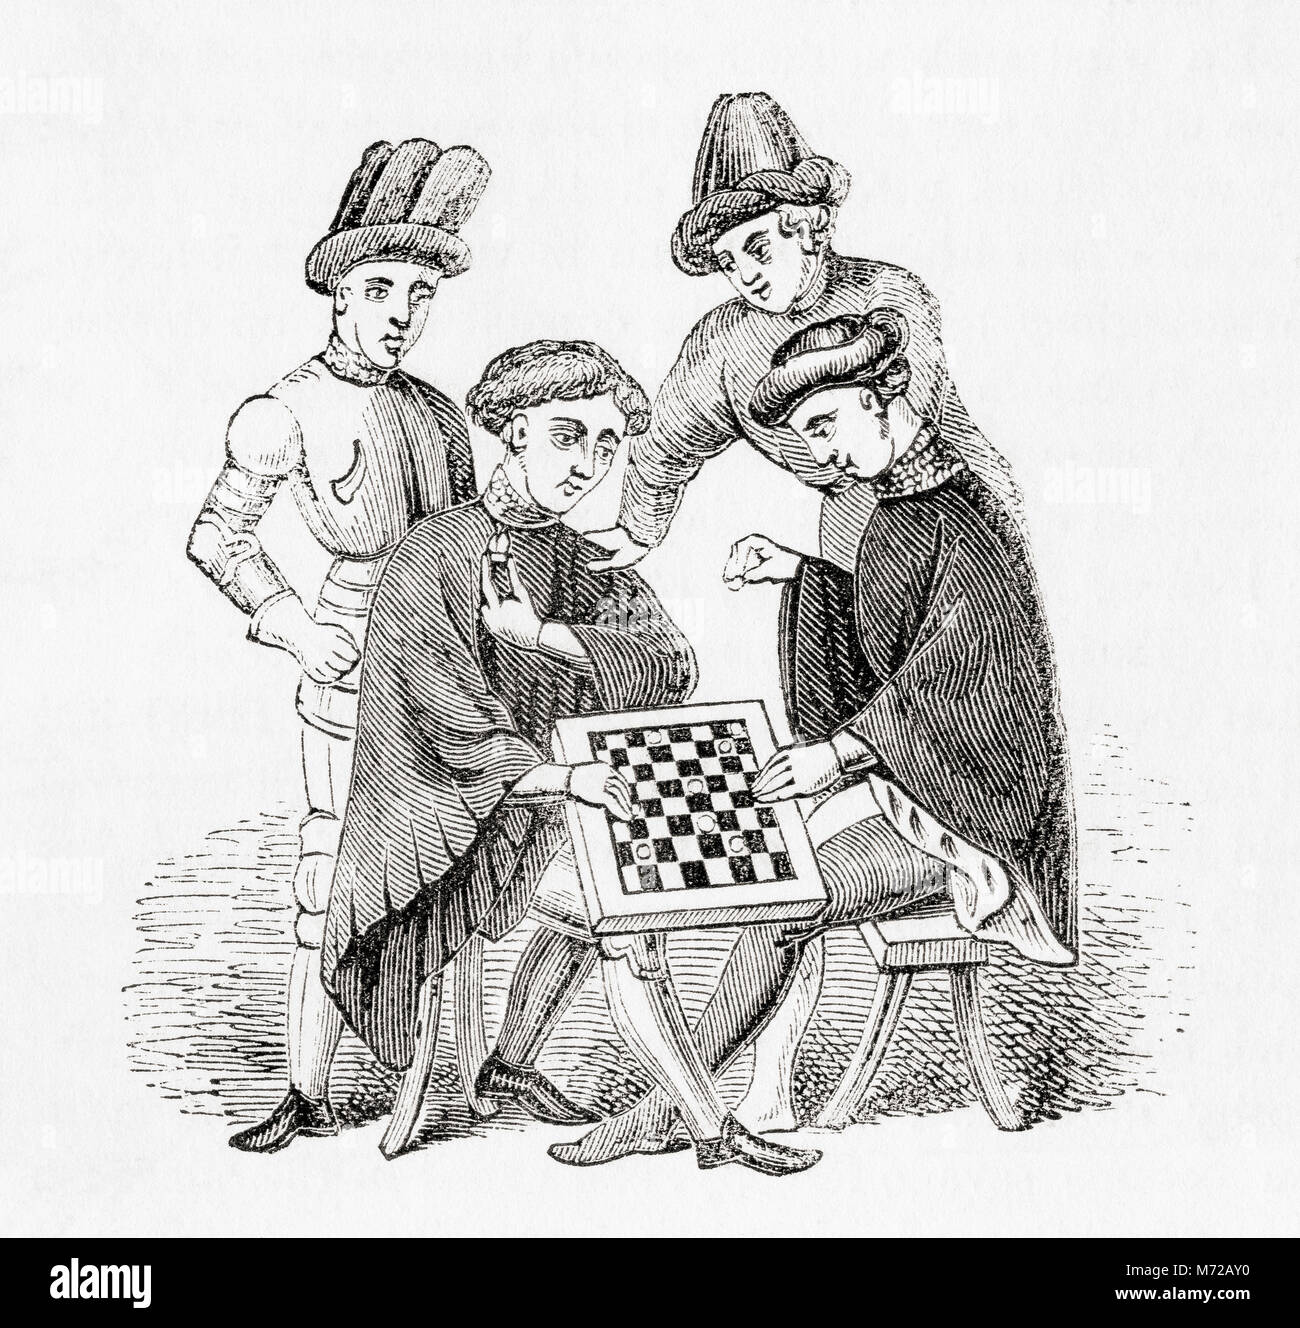 Playing draughts in the Middle Ages.  From Old England: A Pictorial Museum, published 1847. - Stock Image